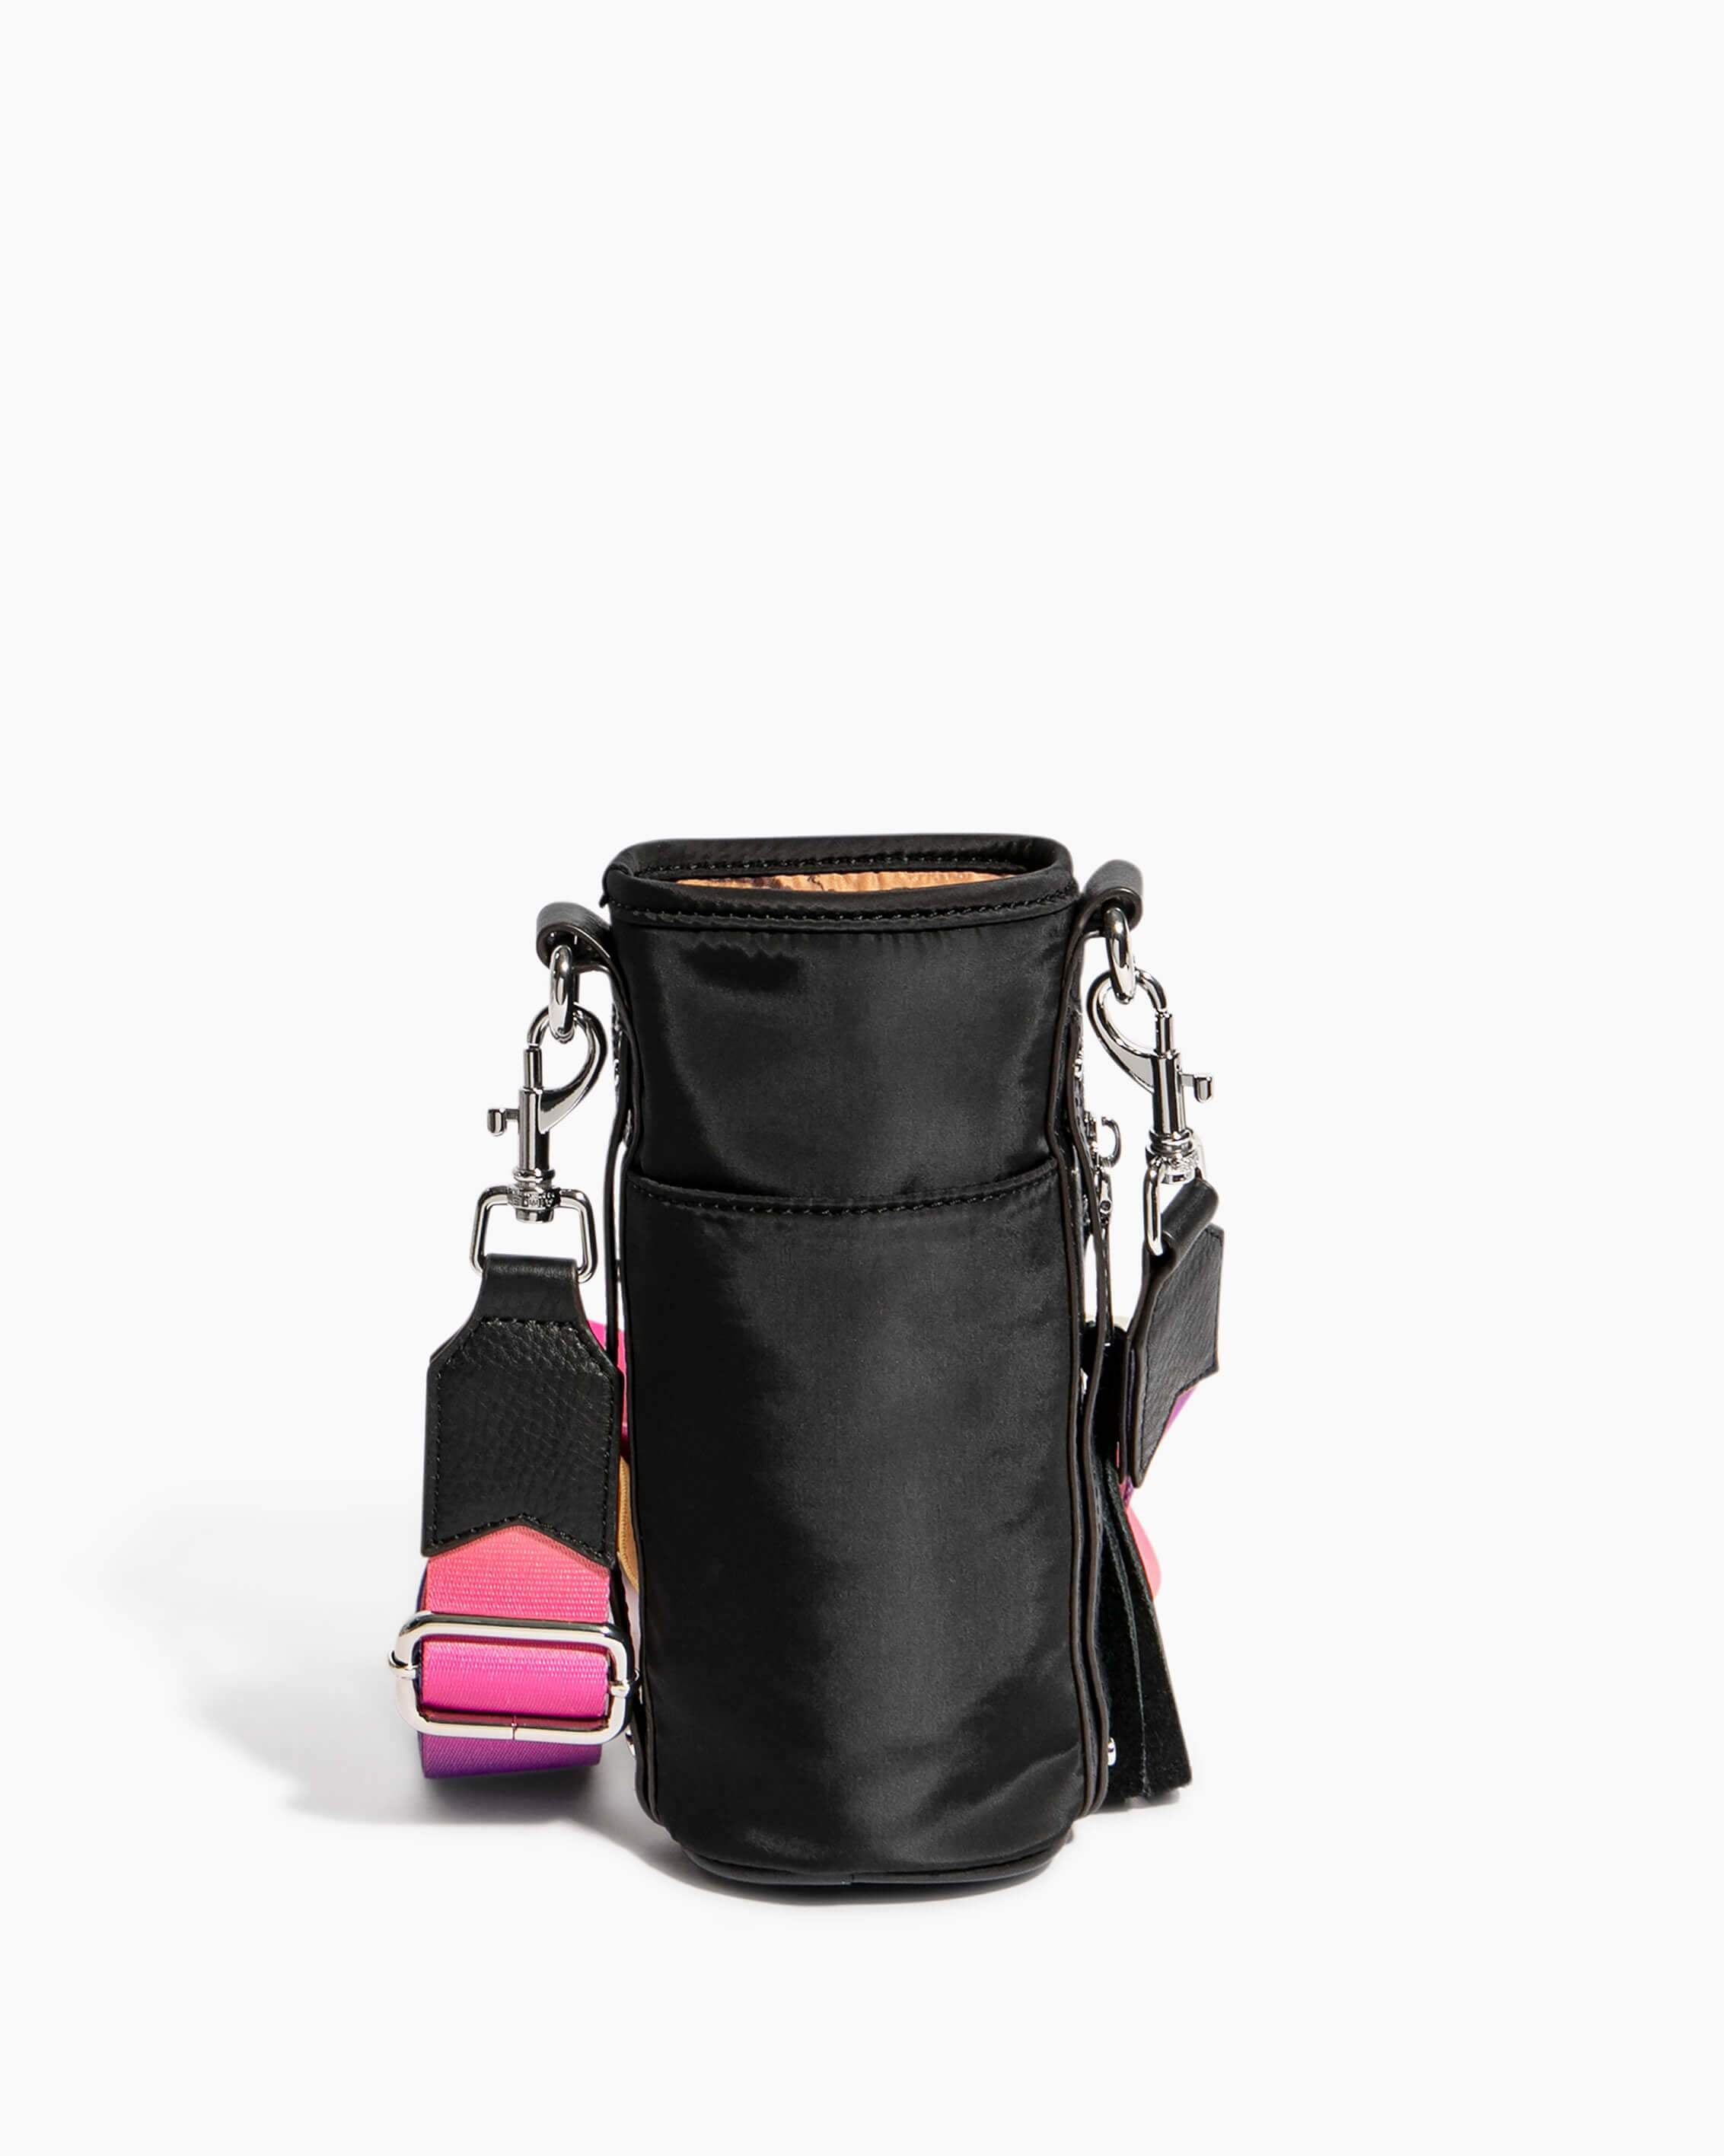 Genny Details about  /Aimee Kestenberg Pebble Leather Crossbody